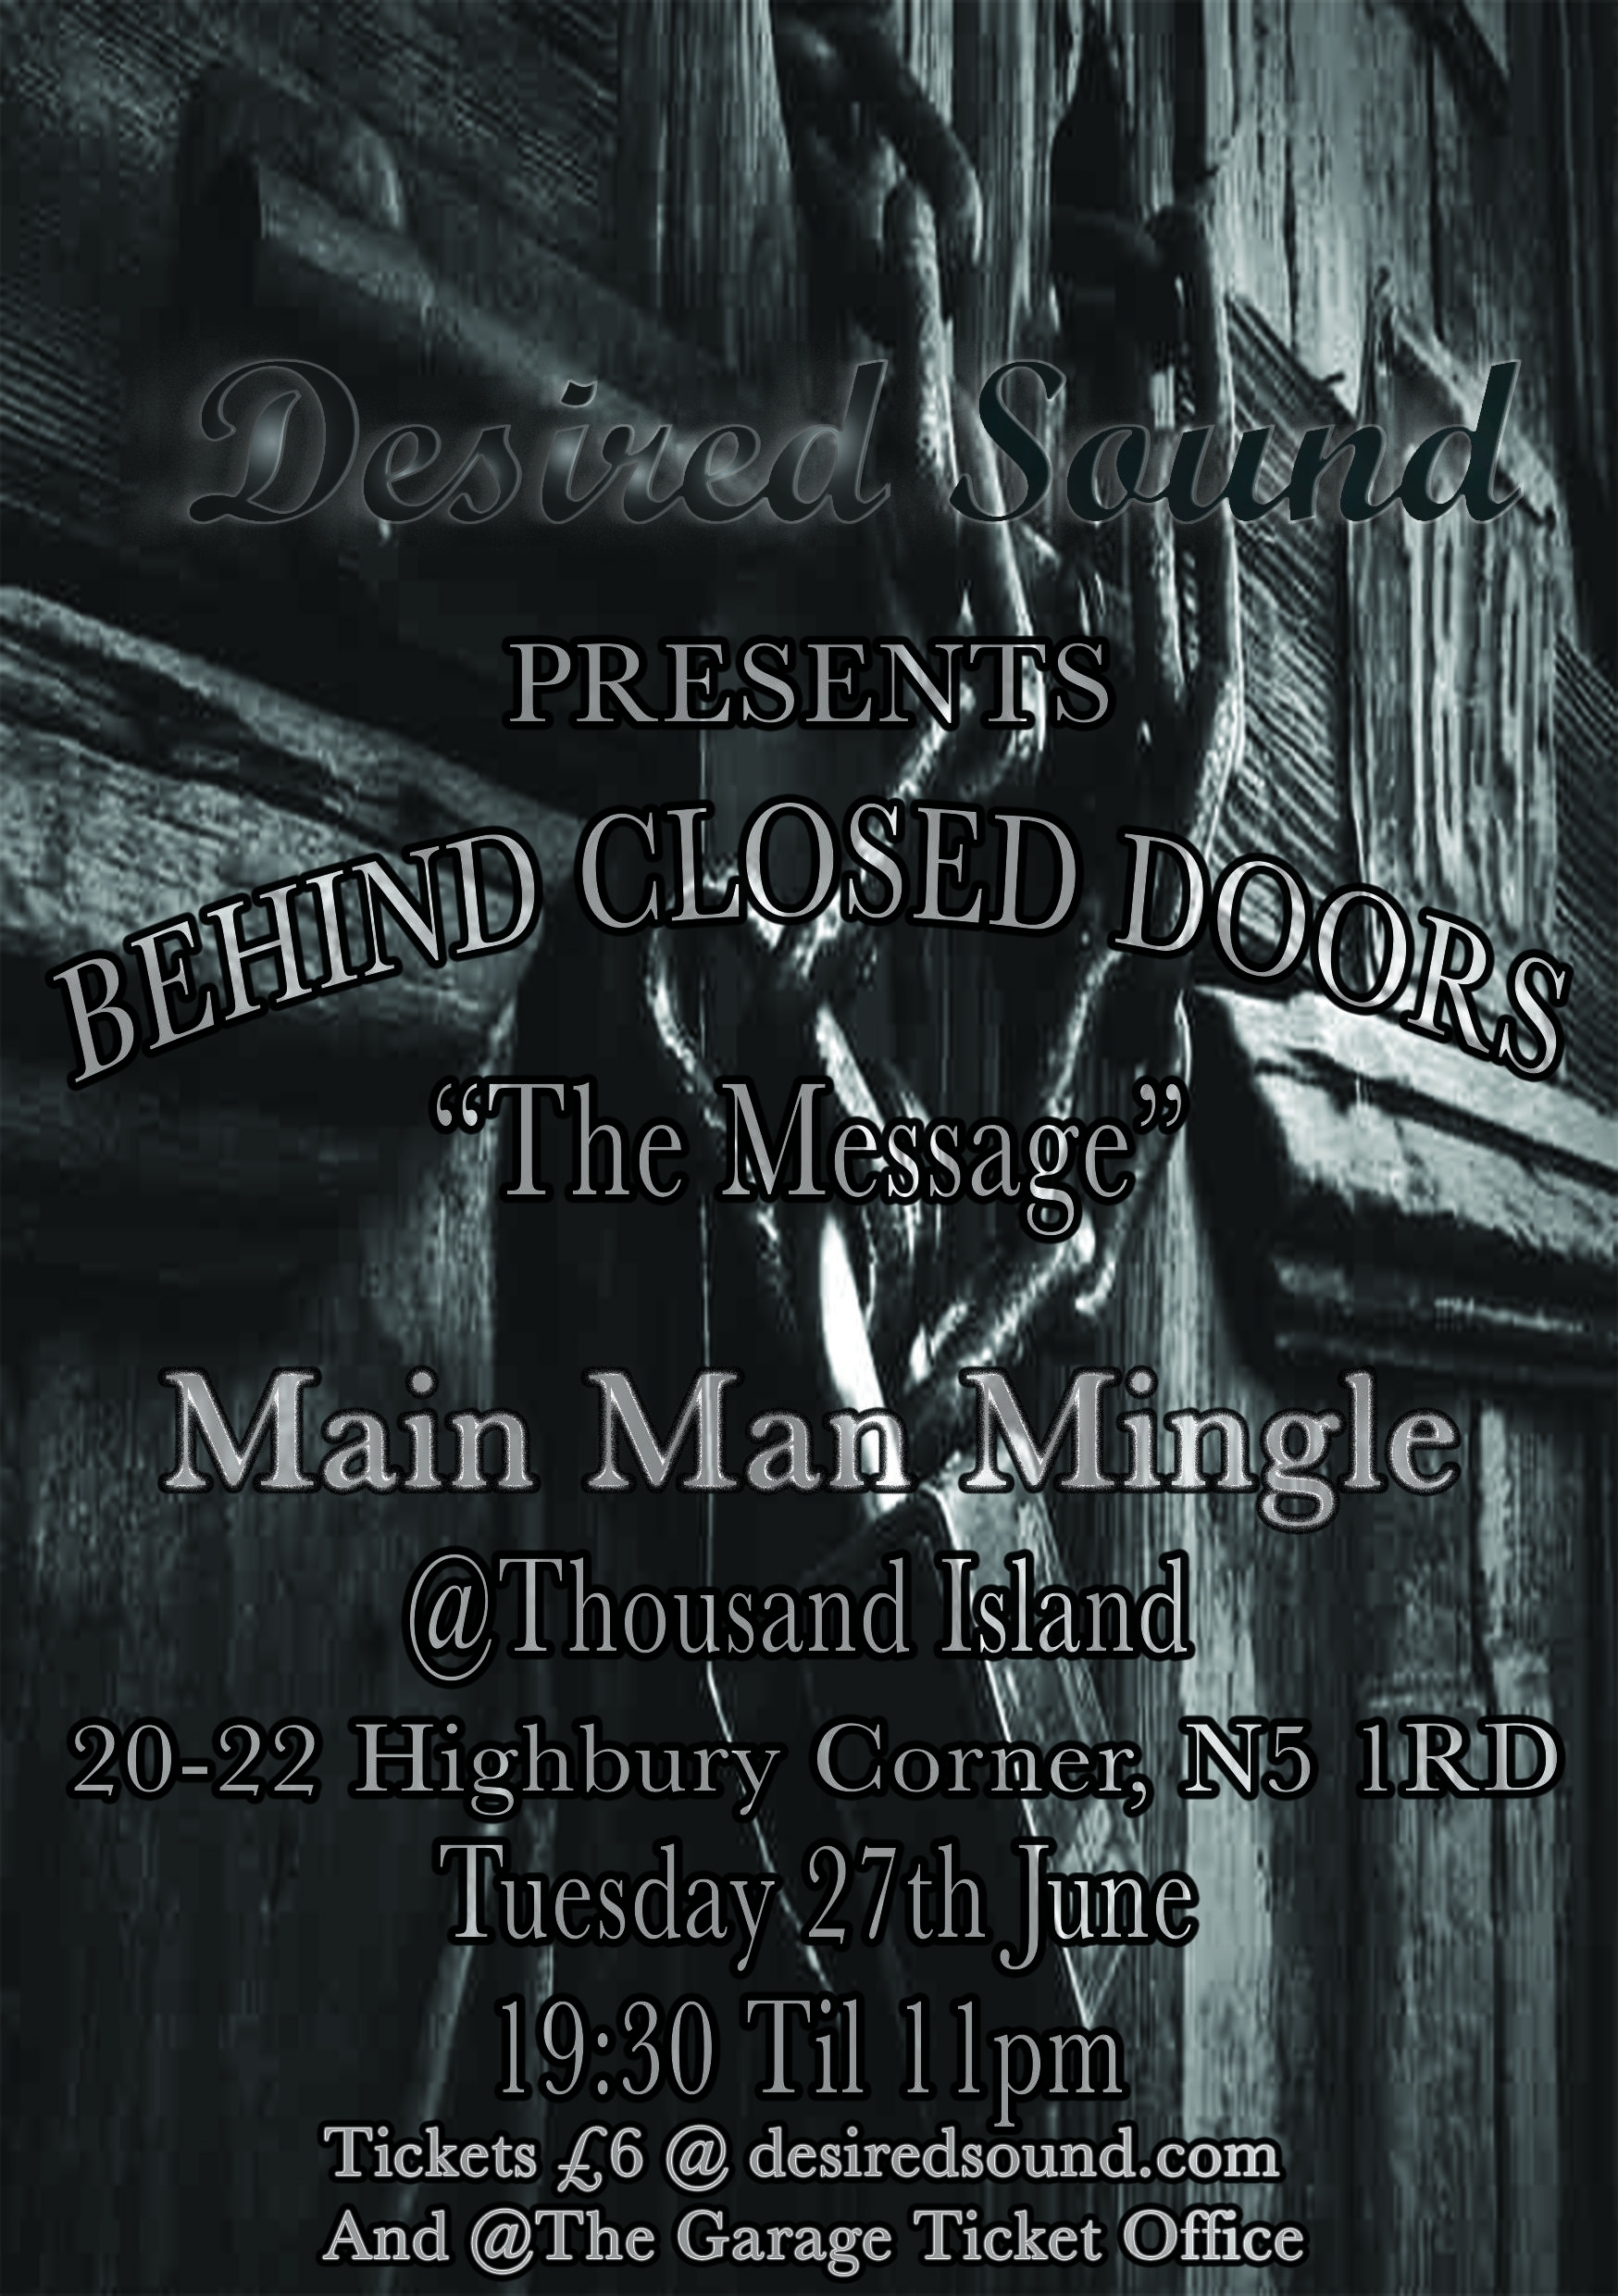 Main Man Mingle Concert (Behind Closed Doors)